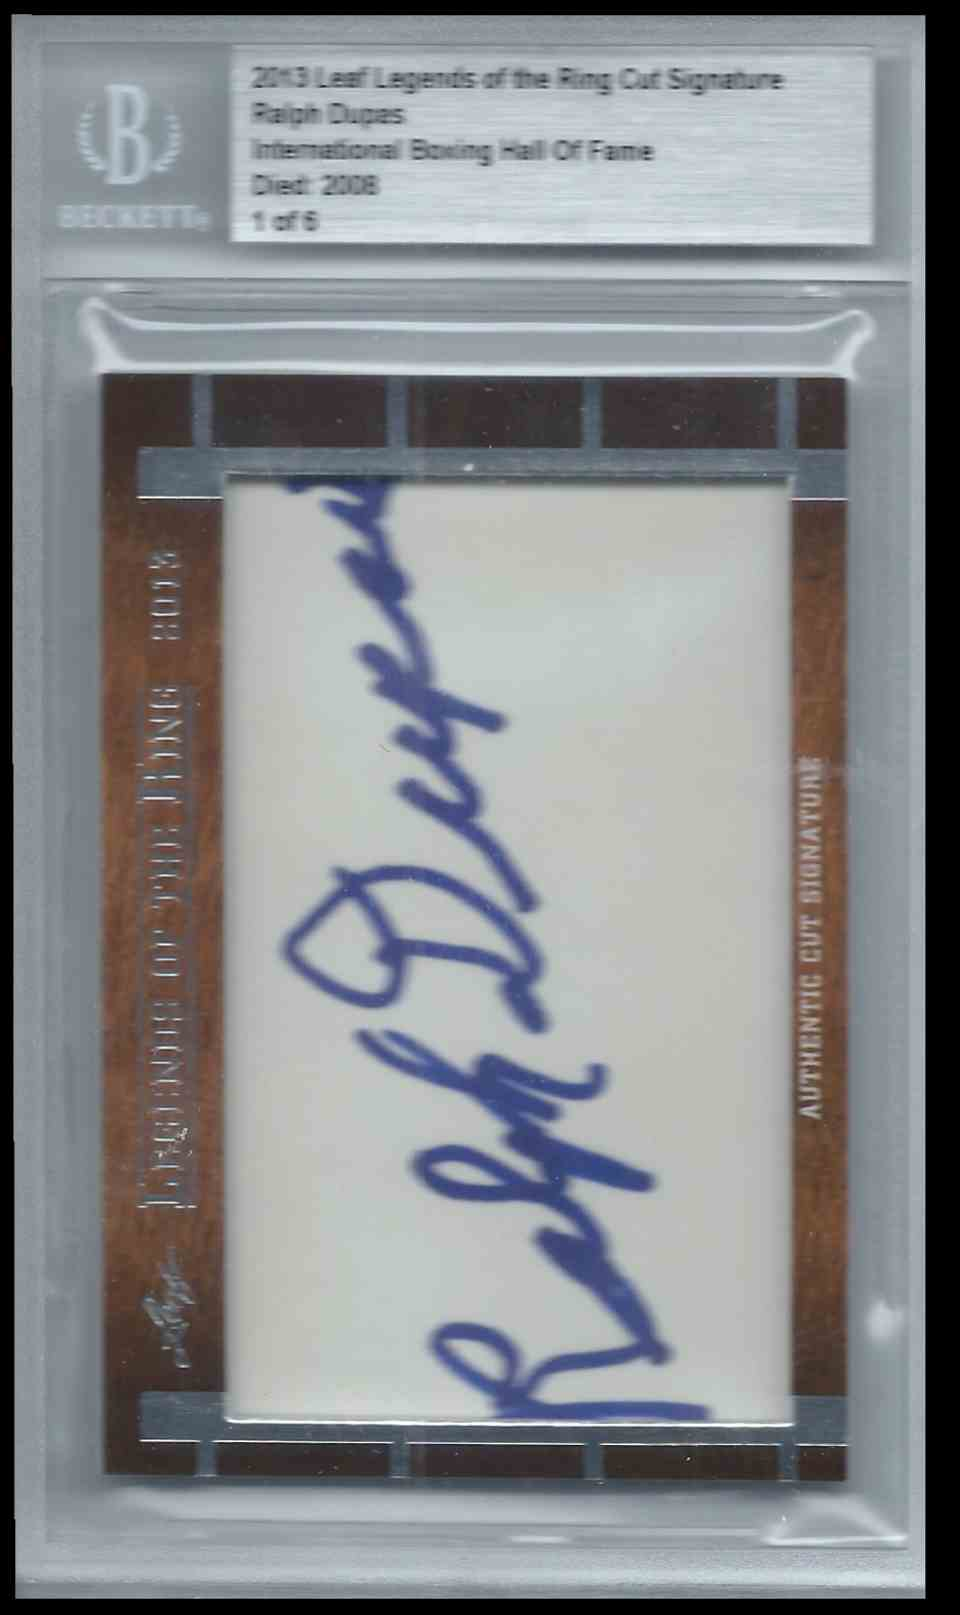 2013 Leaf Legends Of The Ring Cut Signature Edition Boxing Hall Of Fame Ralph Dupes #CUTRD card front image